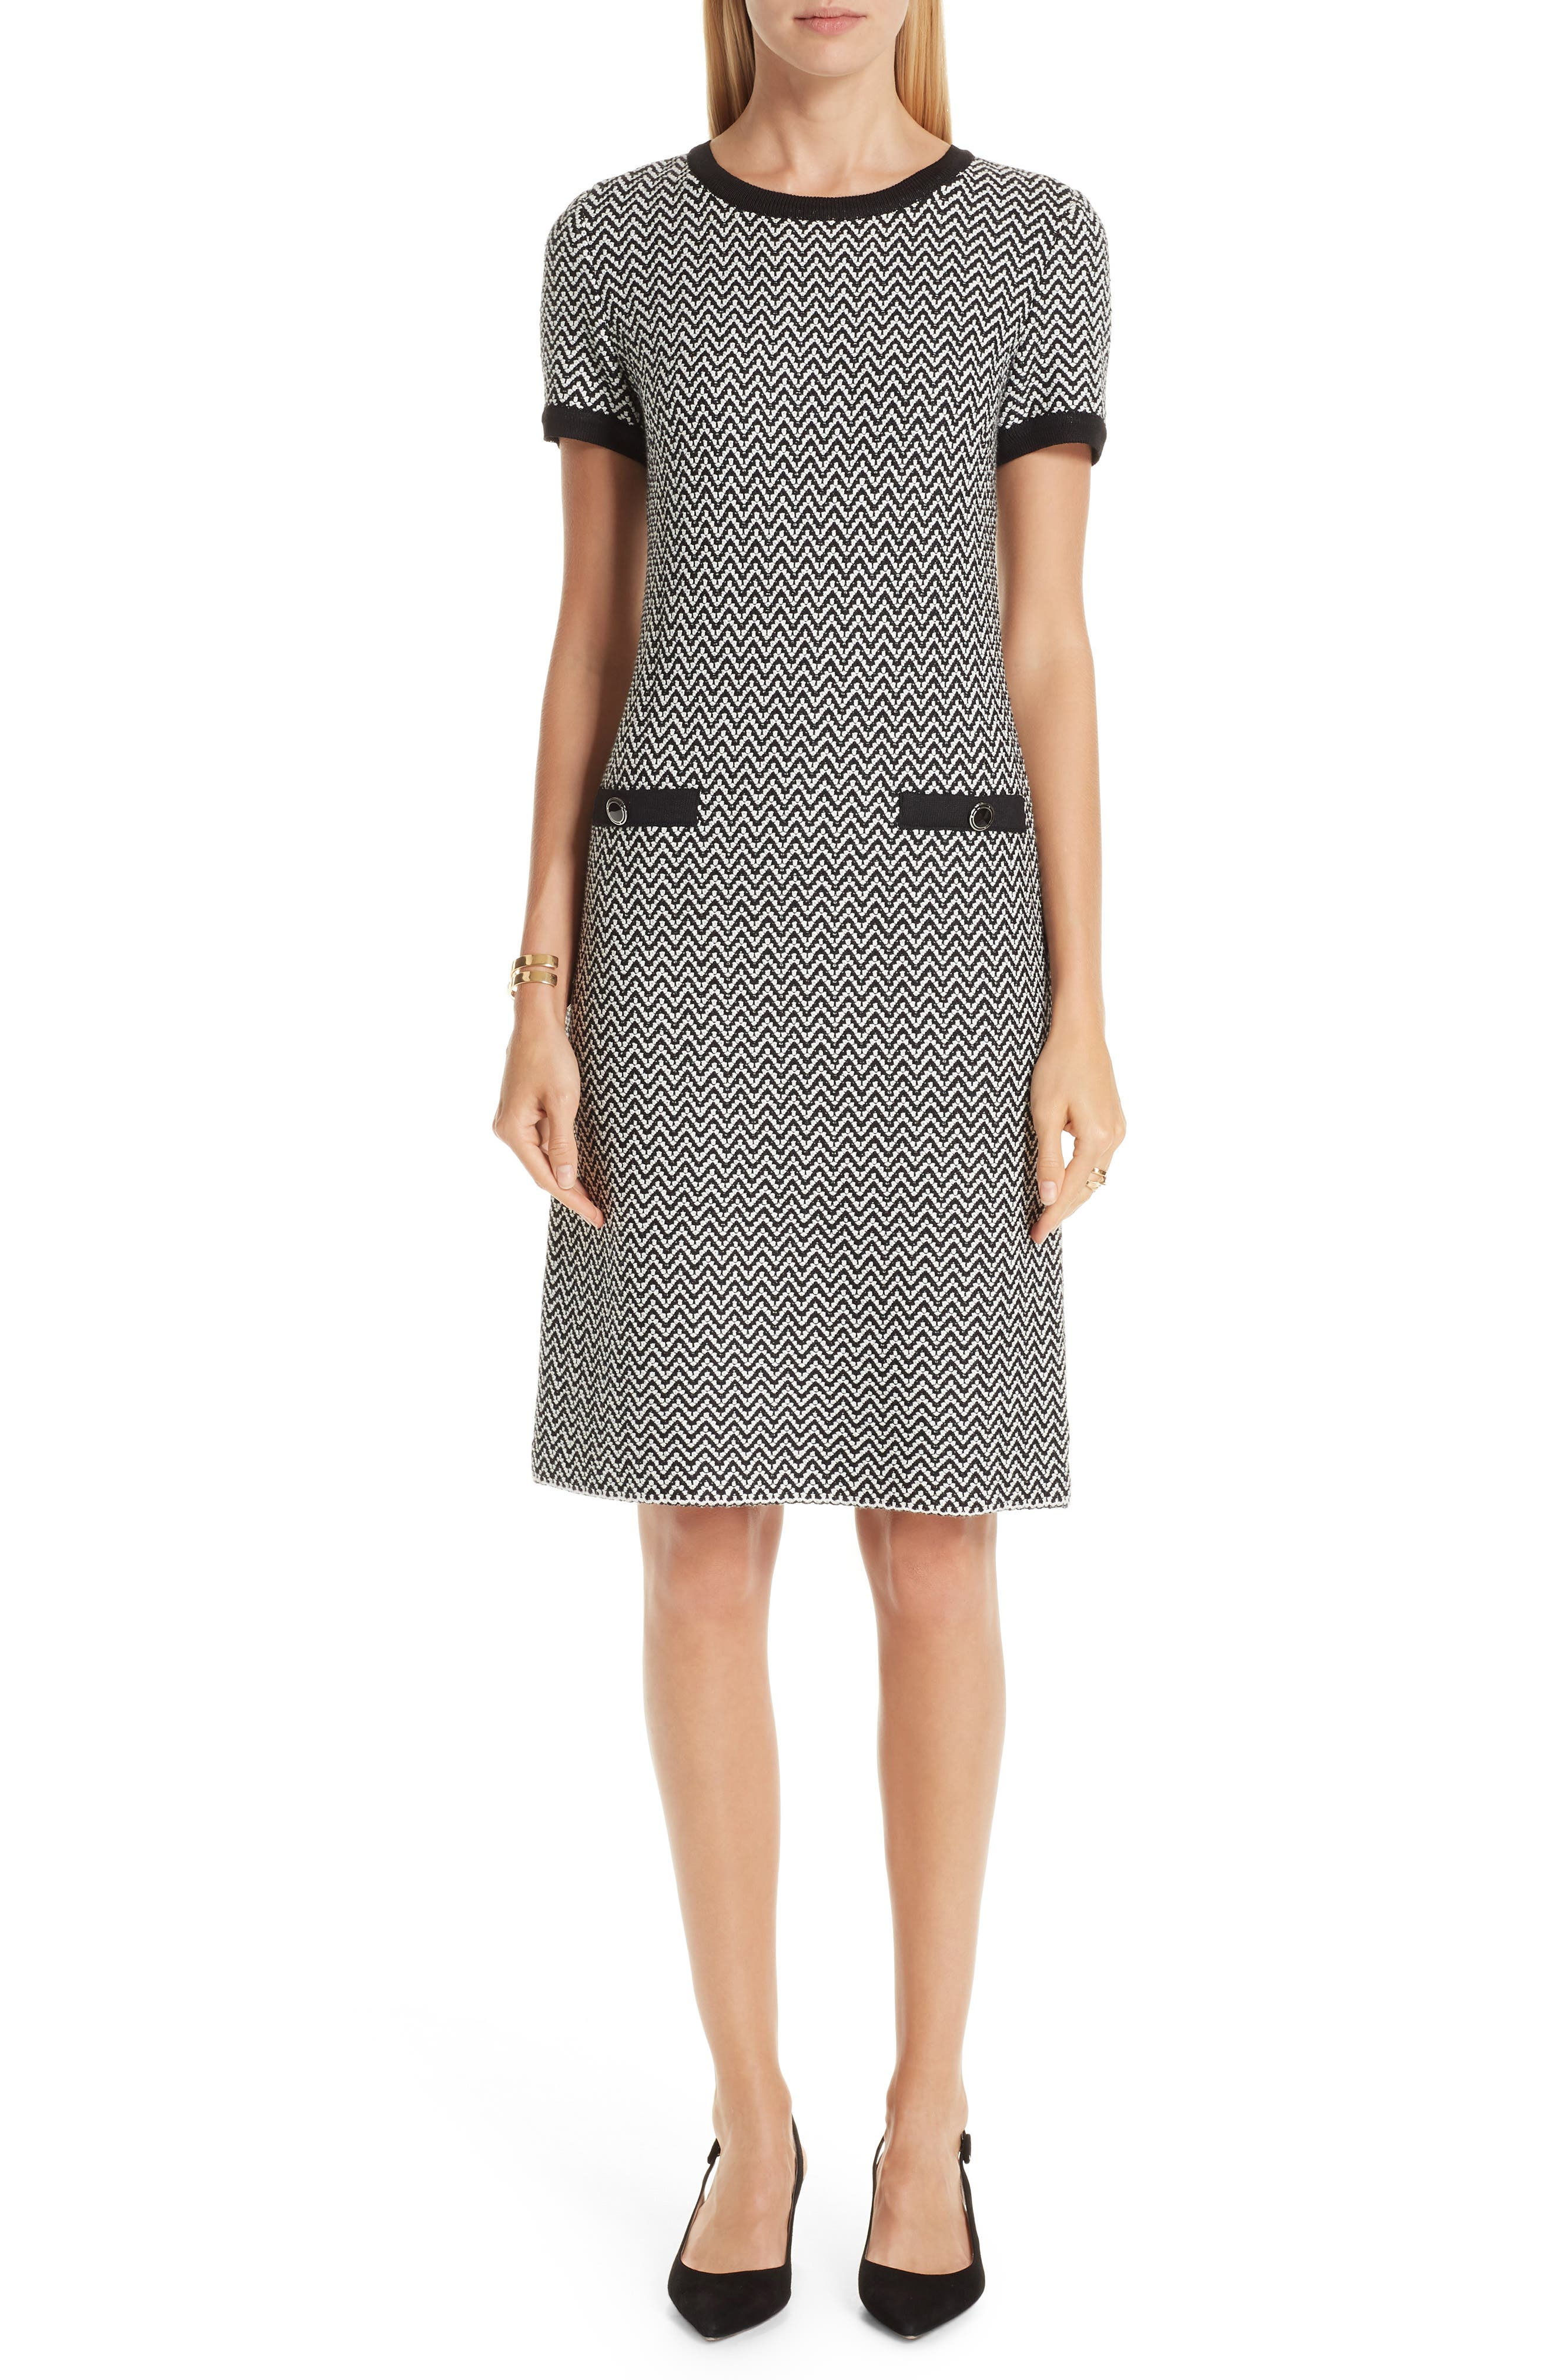 ST. JOHN COLLECTION Mod Herringbone Knit Dress, Main, color, CAVIAR/ CREAM